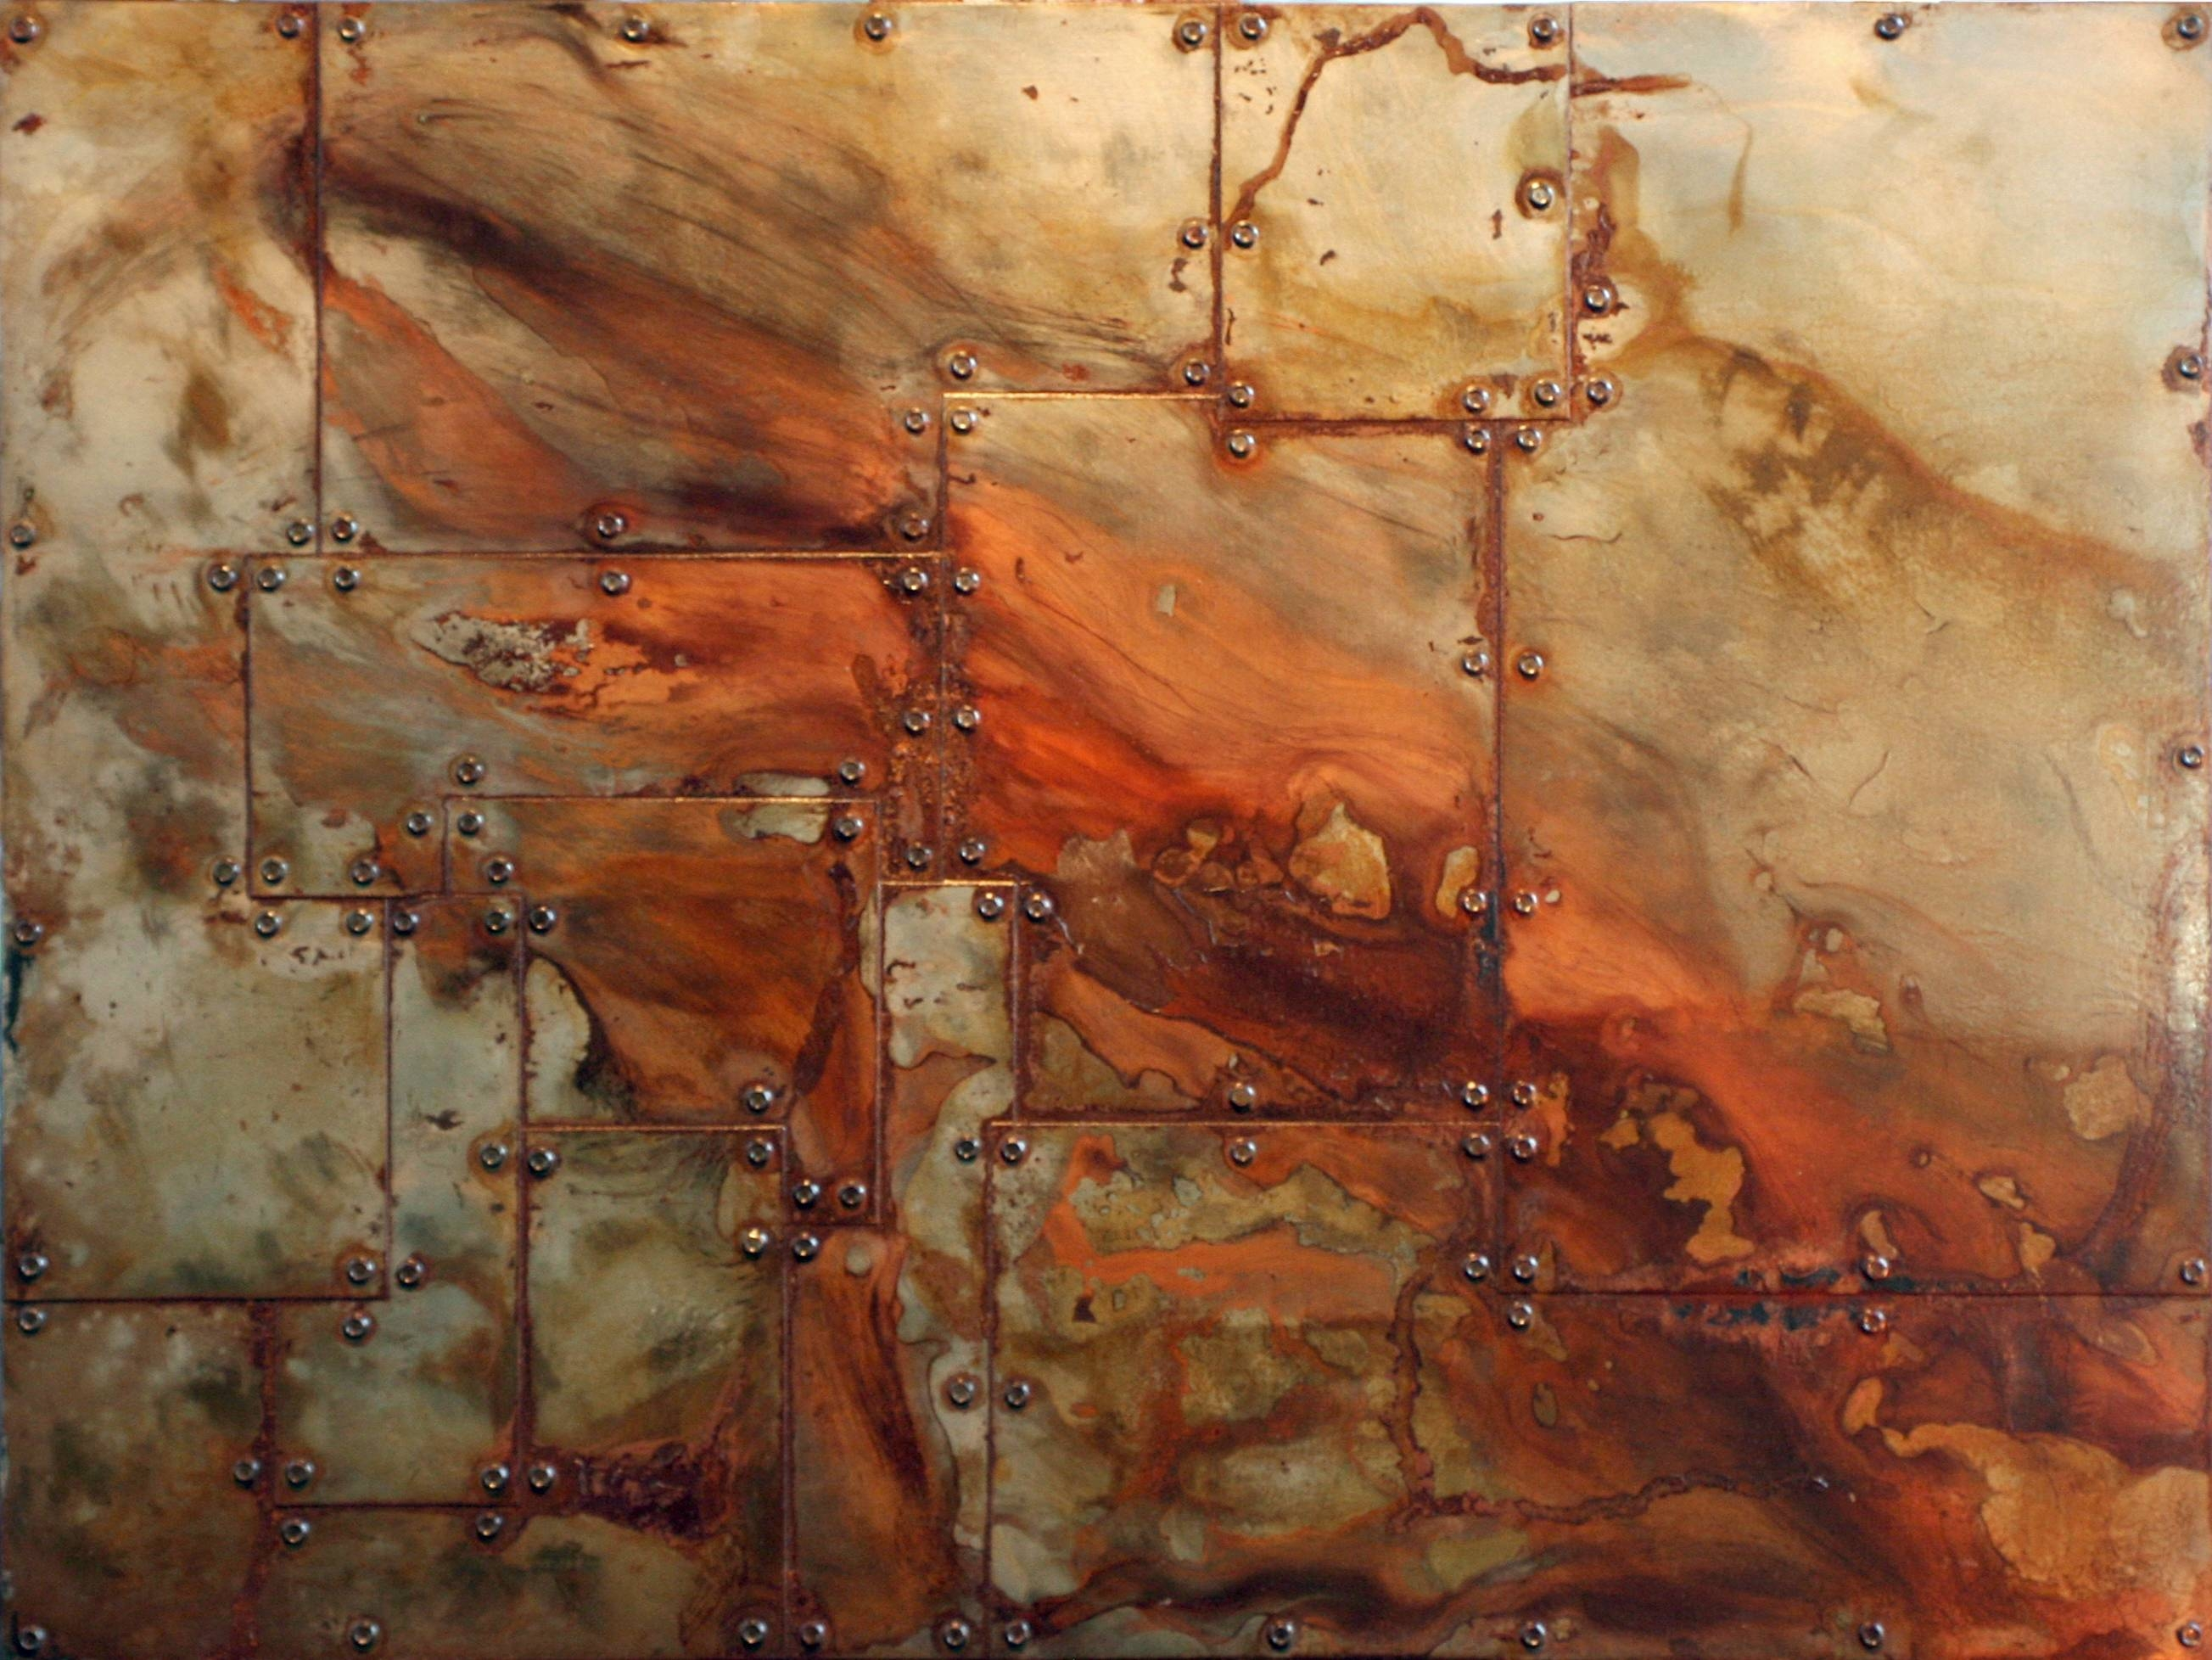 Metal Texture Background, Old Metal Texture Image In Latest Rusted Metal Wall Art (View 11 of 20)